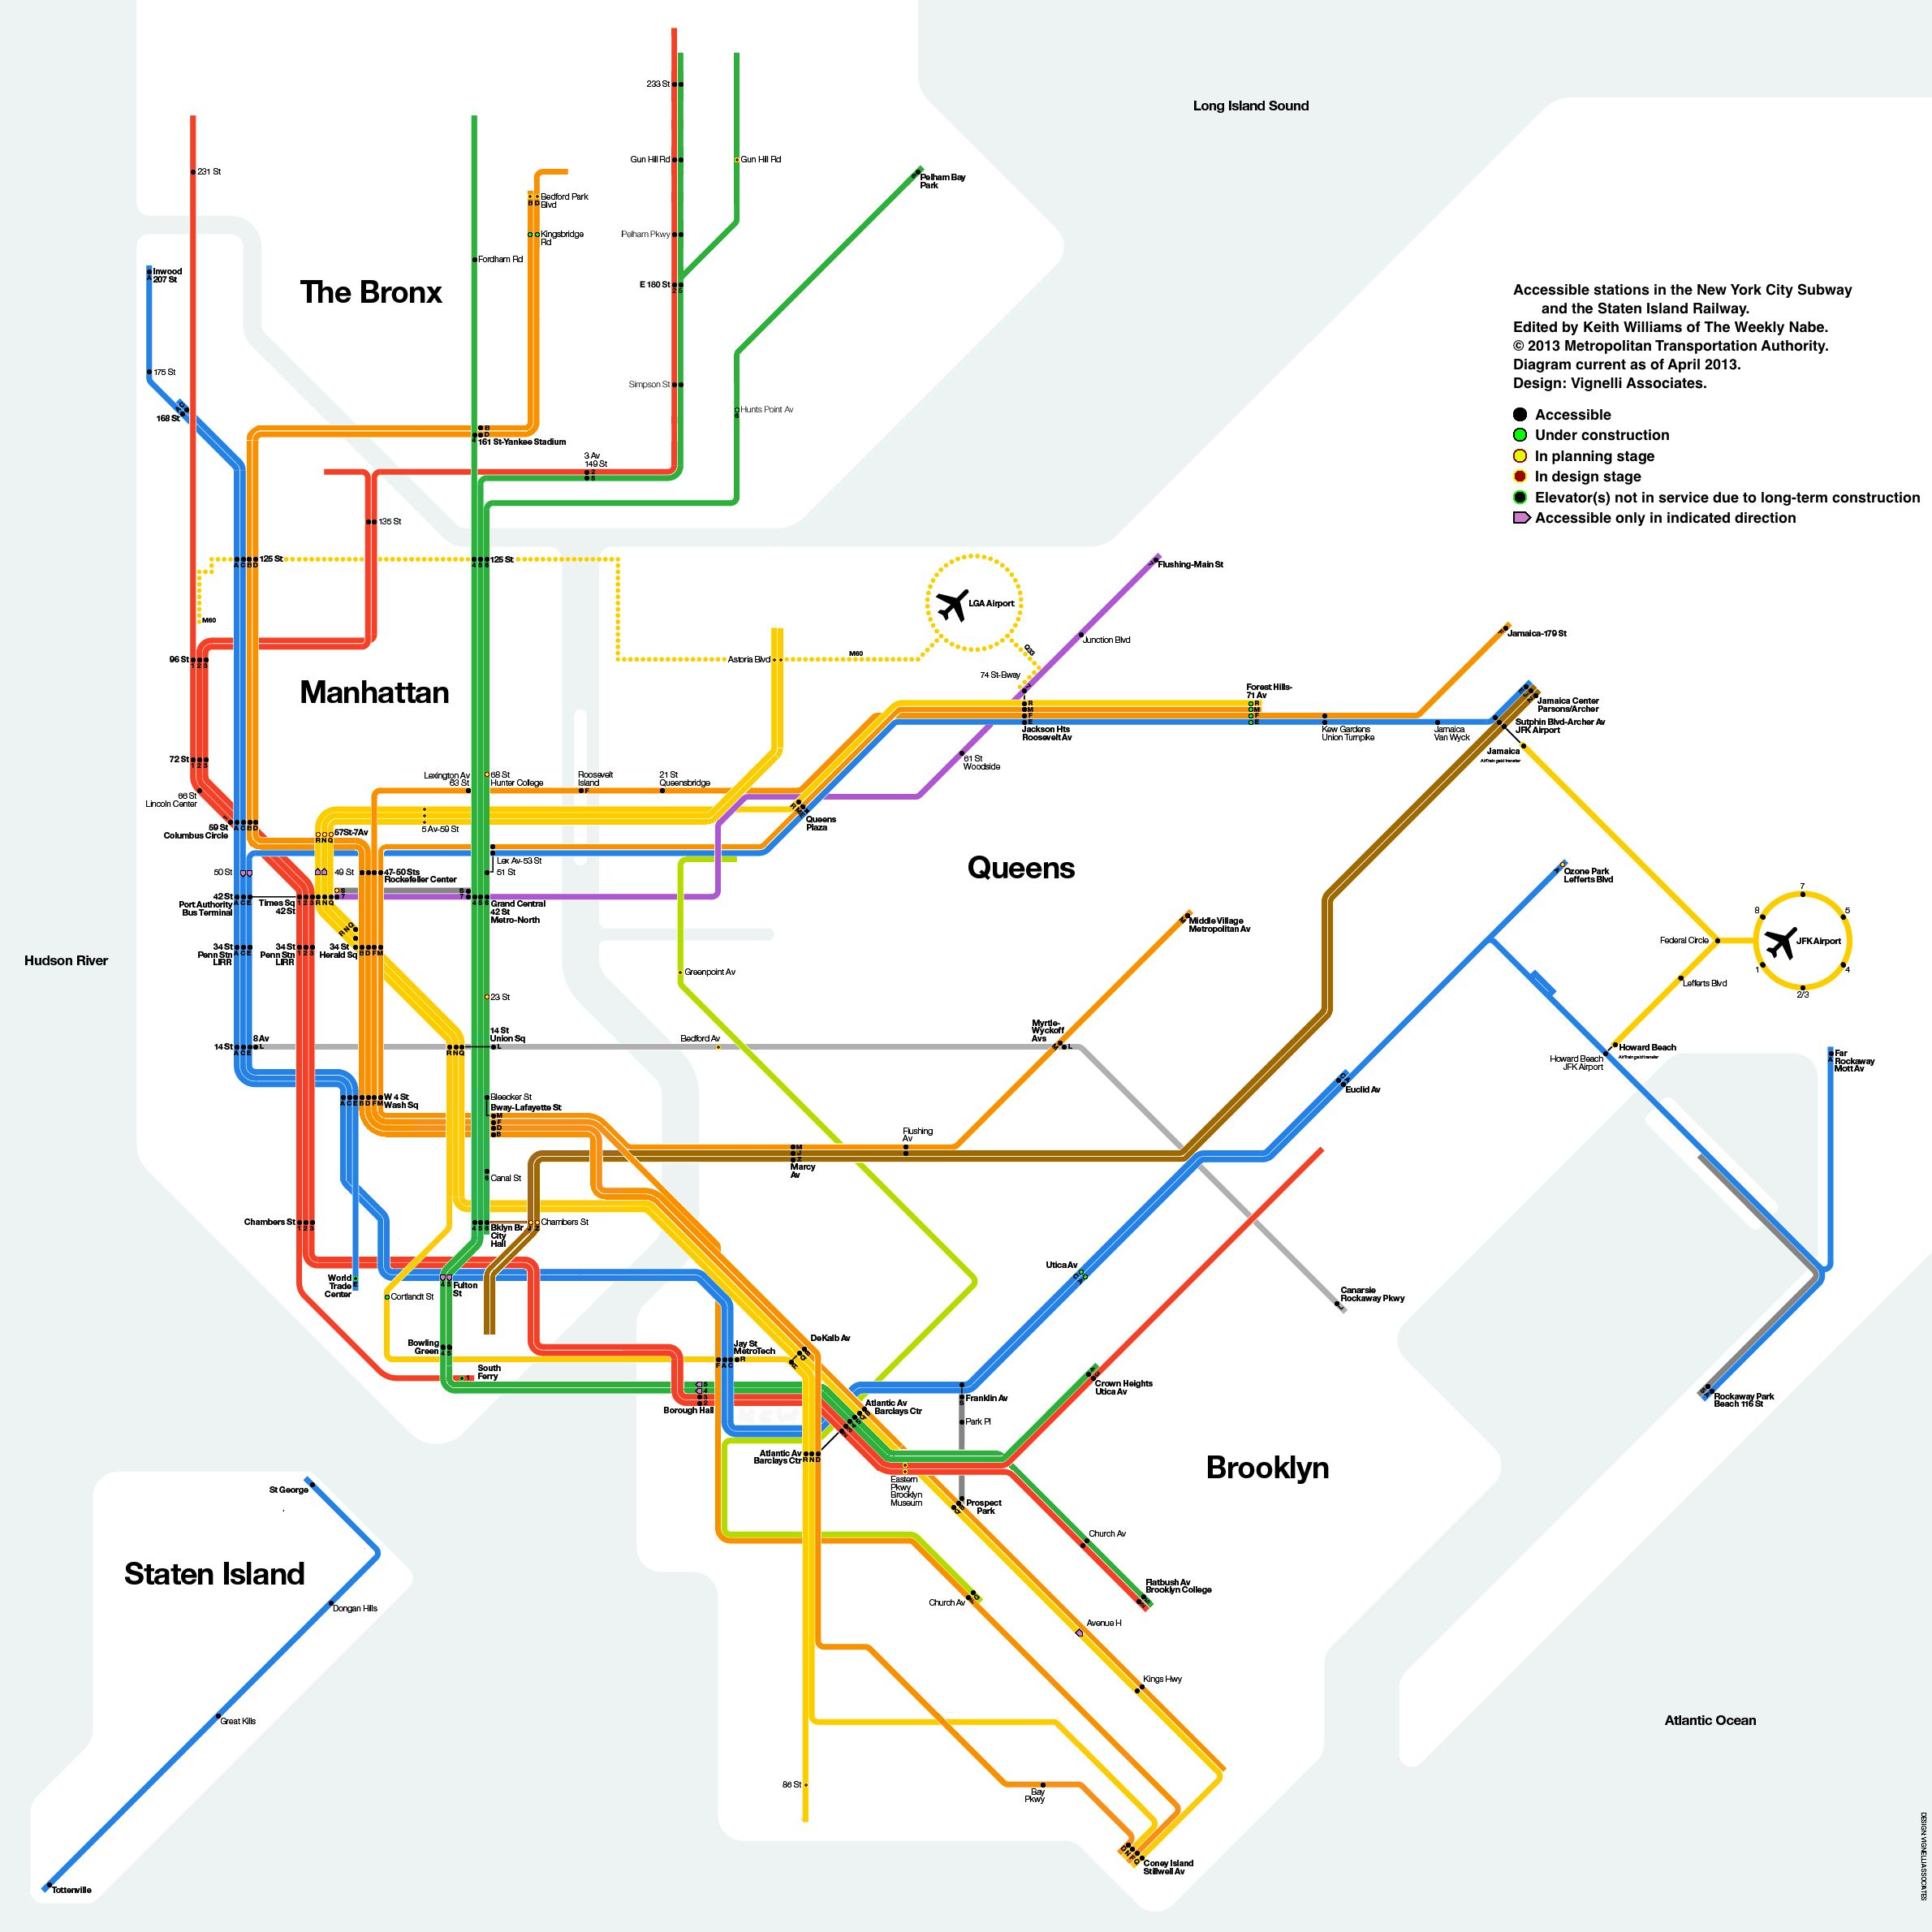 NYC Subway Map With Only Accessible Stations Shown Shows The - Chicago map new york